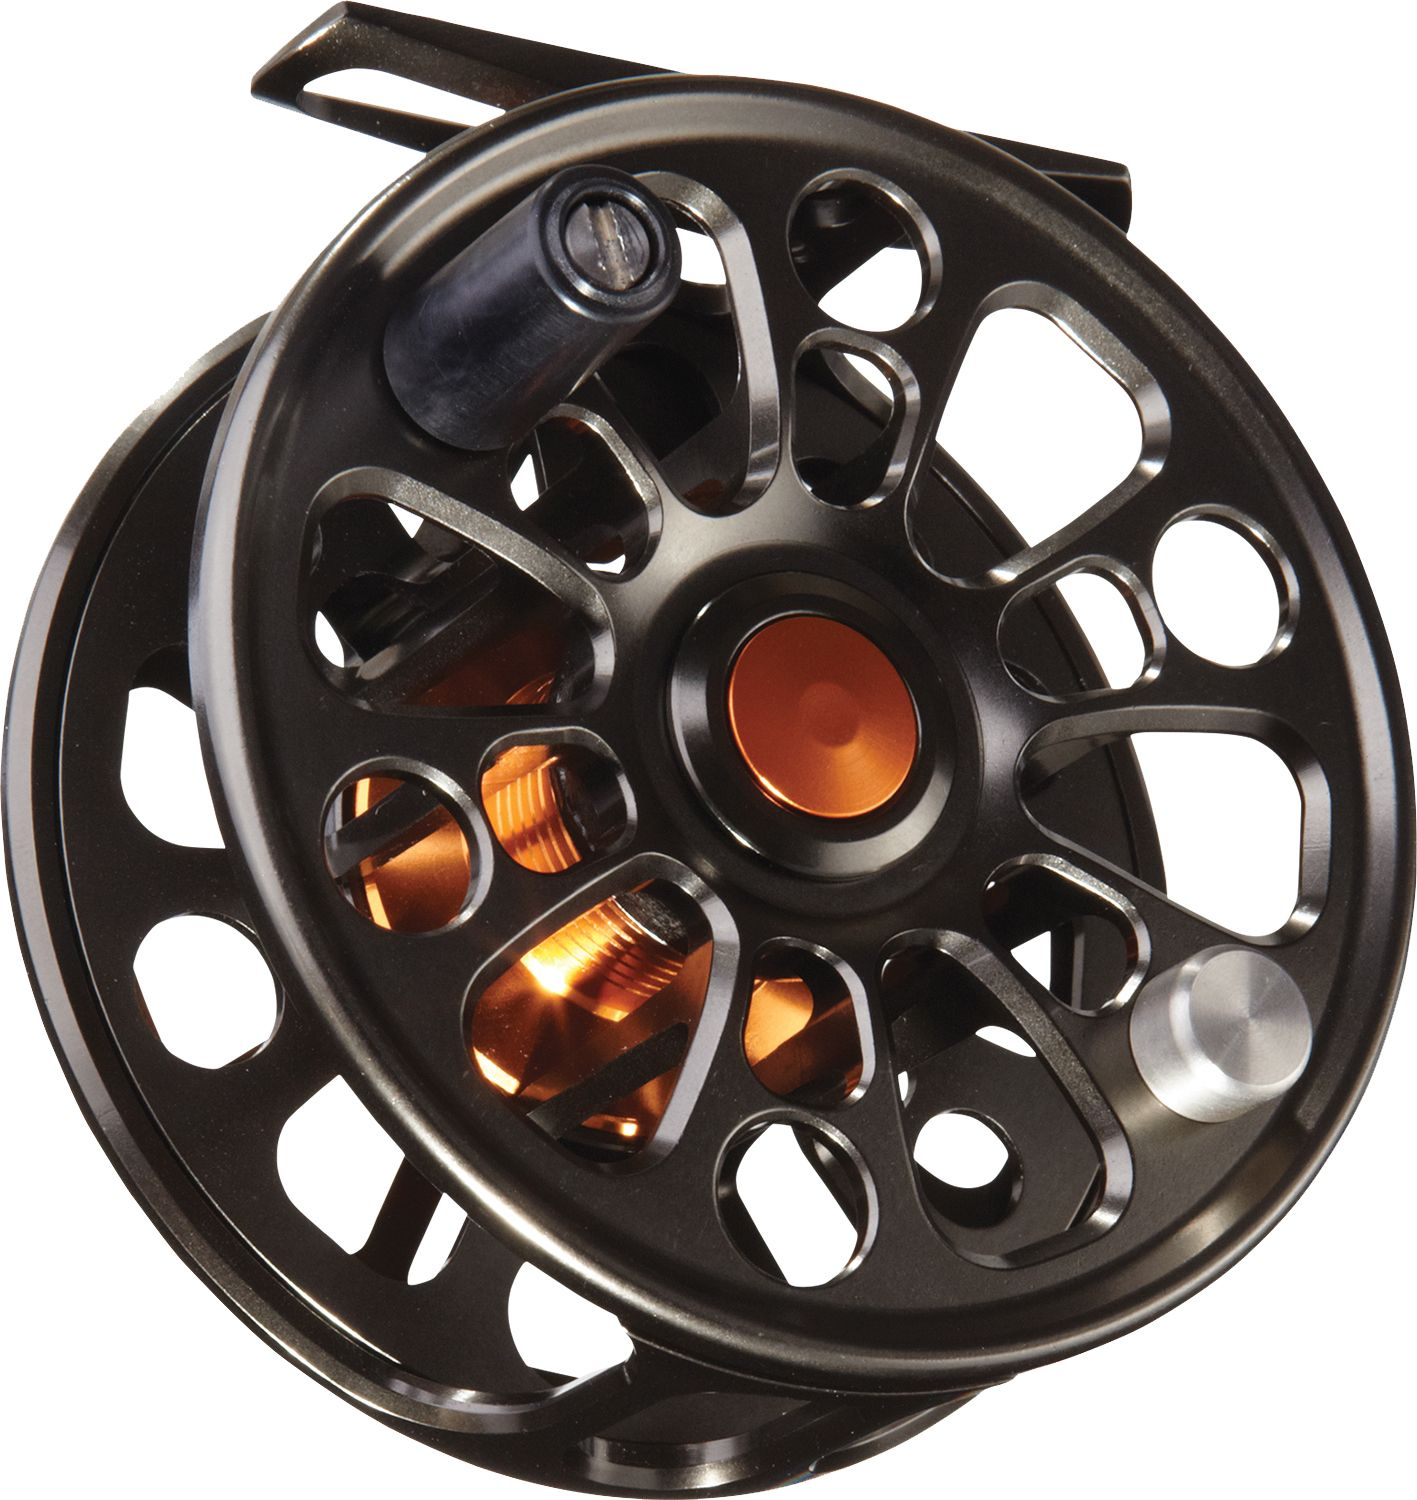 Field & Stream North Branch Fly Fishing Reels, Size: 7/8